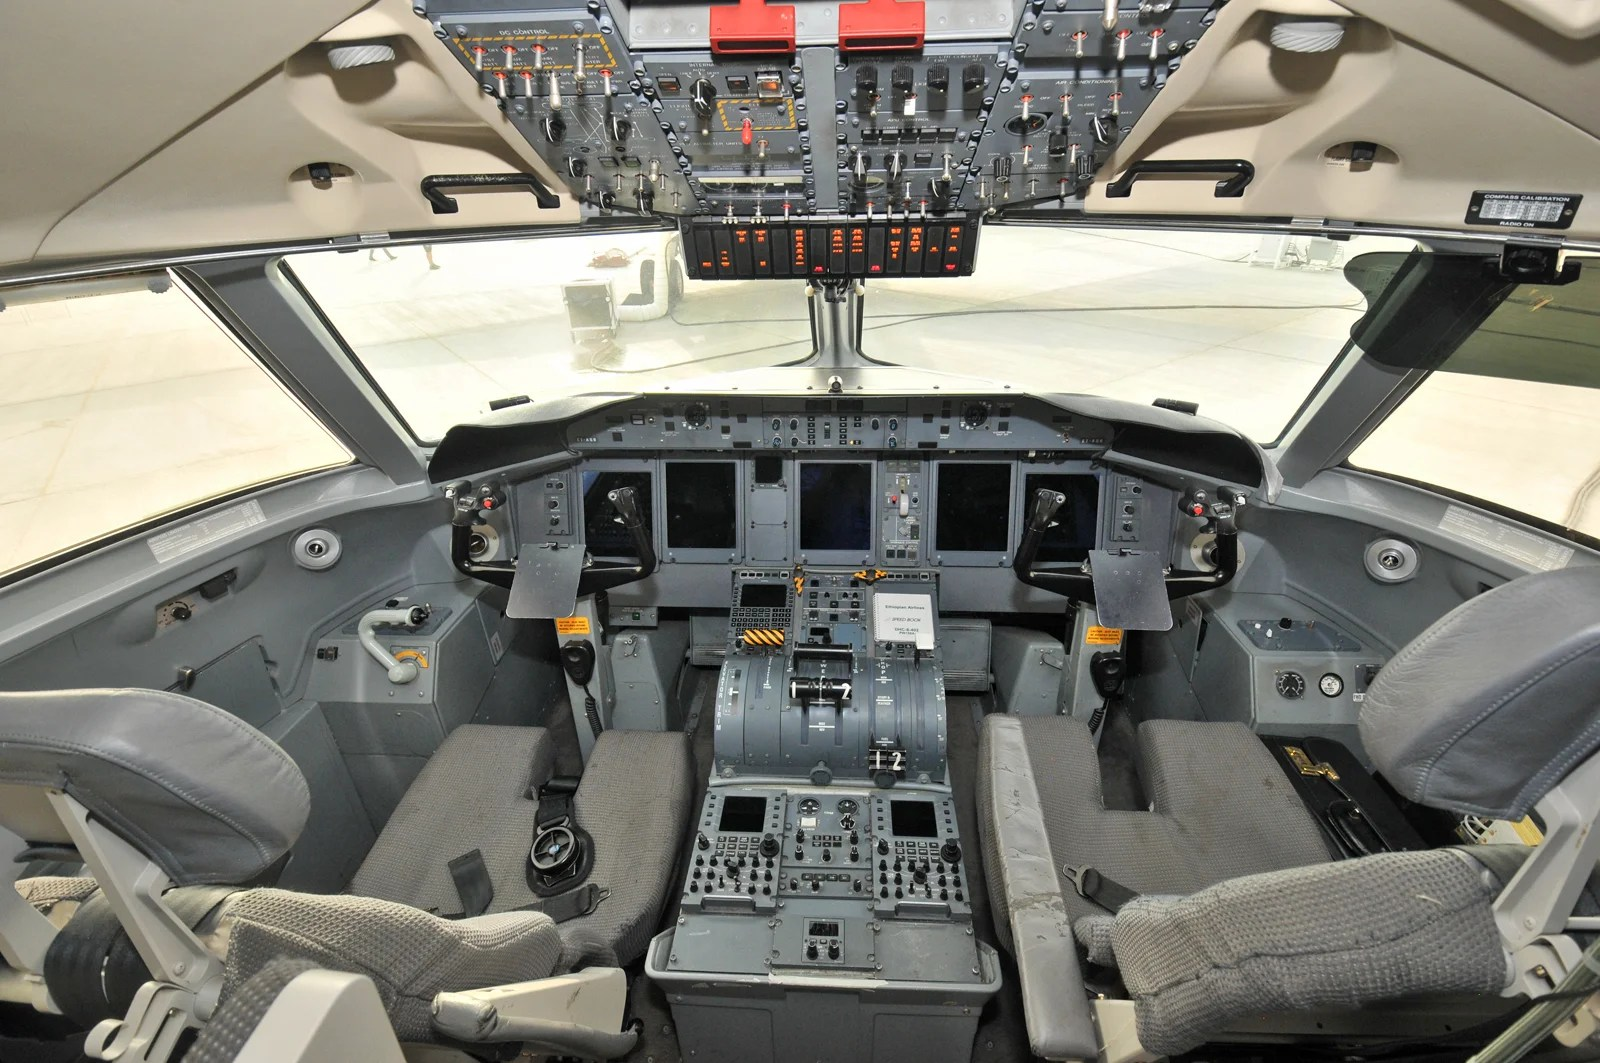 How Much Experience Does a Pilot Need to Work at an Airline?